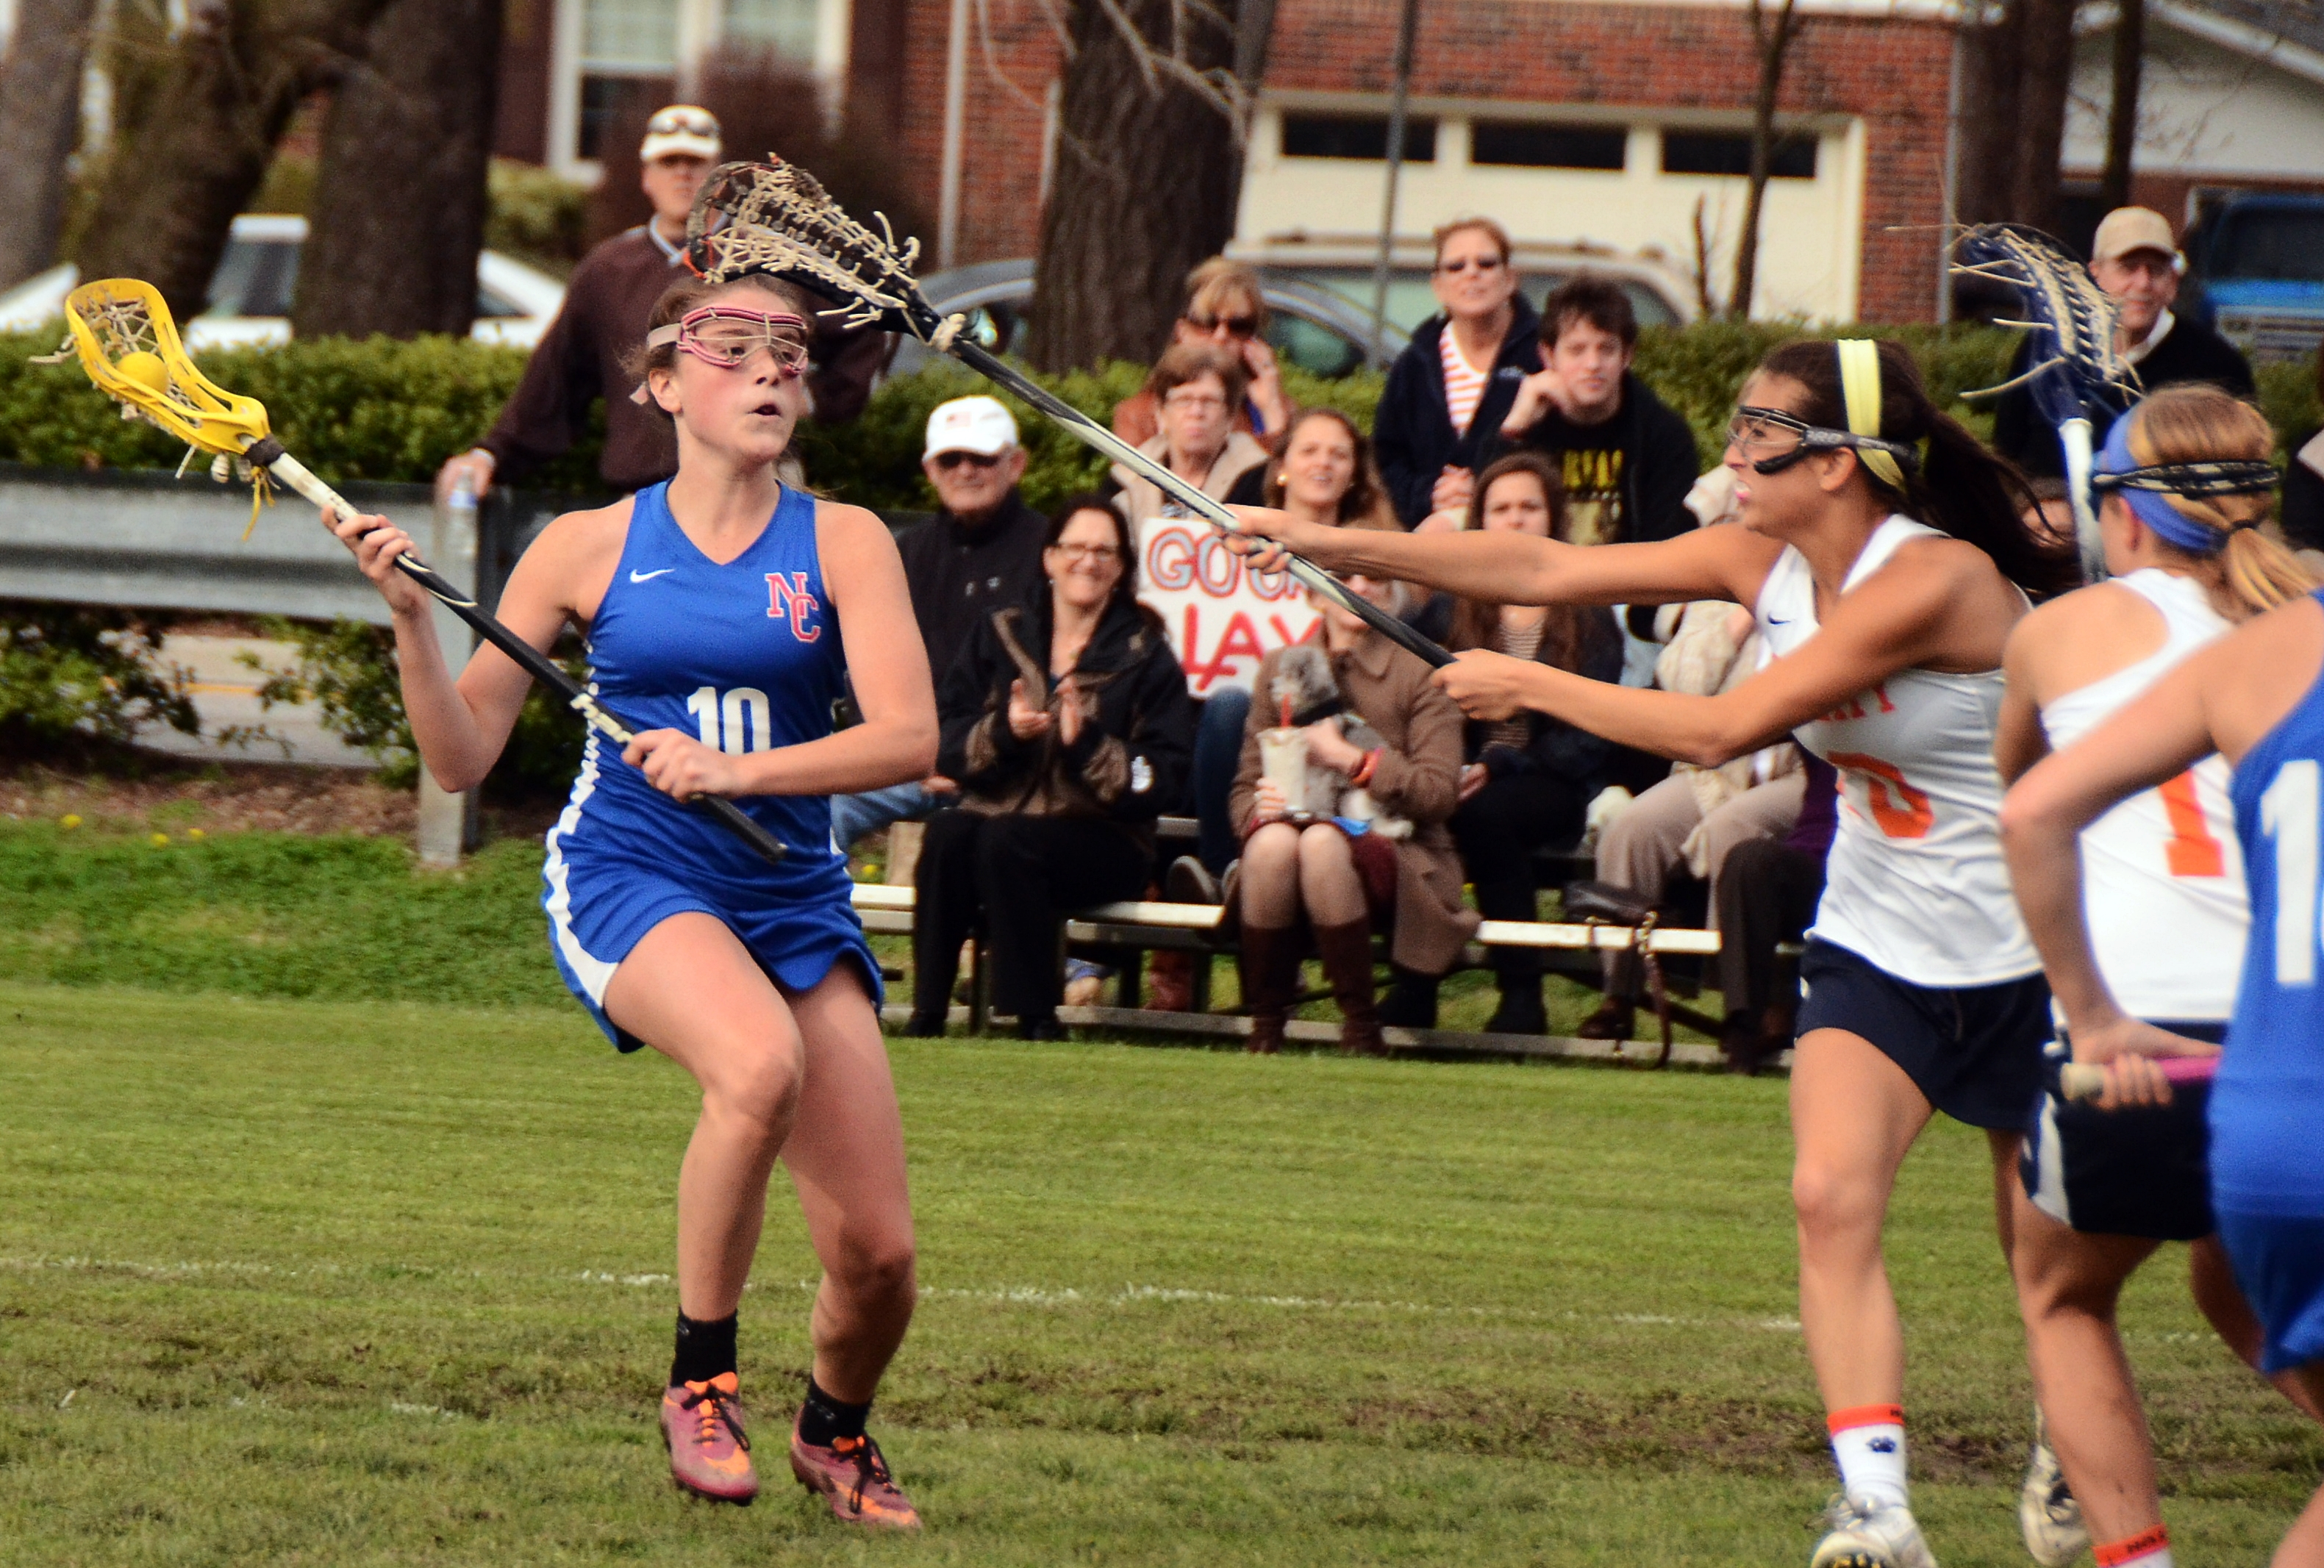 lacrosse single women Apr 24 - women's lacrosse braeunle nets single-season scoring mark in win  at purchase apr 21 - women's lacrosse late goal does in griffins in defeat at .